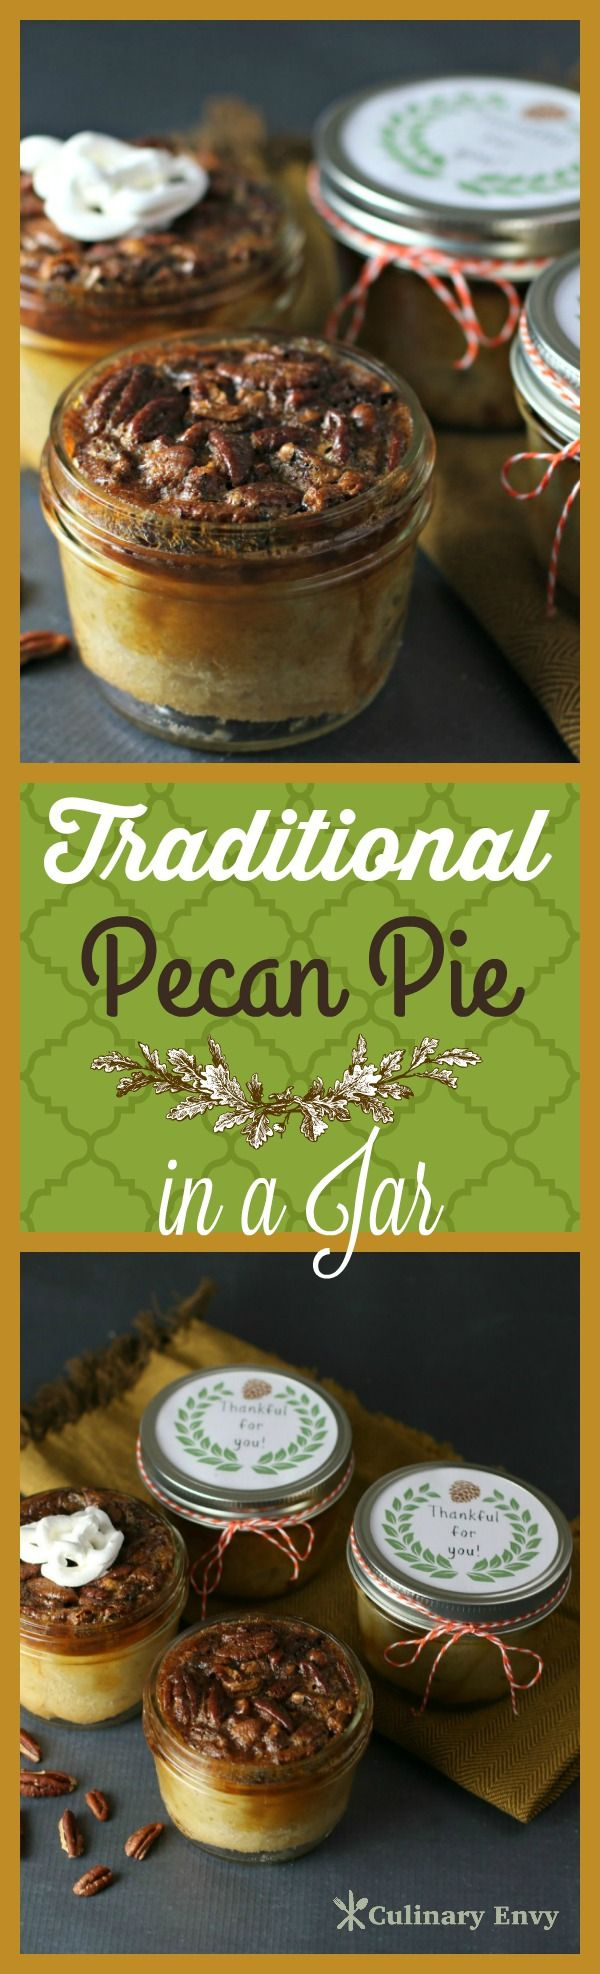 Traditional Pecan Pie in a Jar is deeply toasted, sweet, luxurious flavor. Just break through the caramelized, crispy pecan topping to expose the amber colored rich filling and flaky crust inside. Personalized Dessert and Printable!